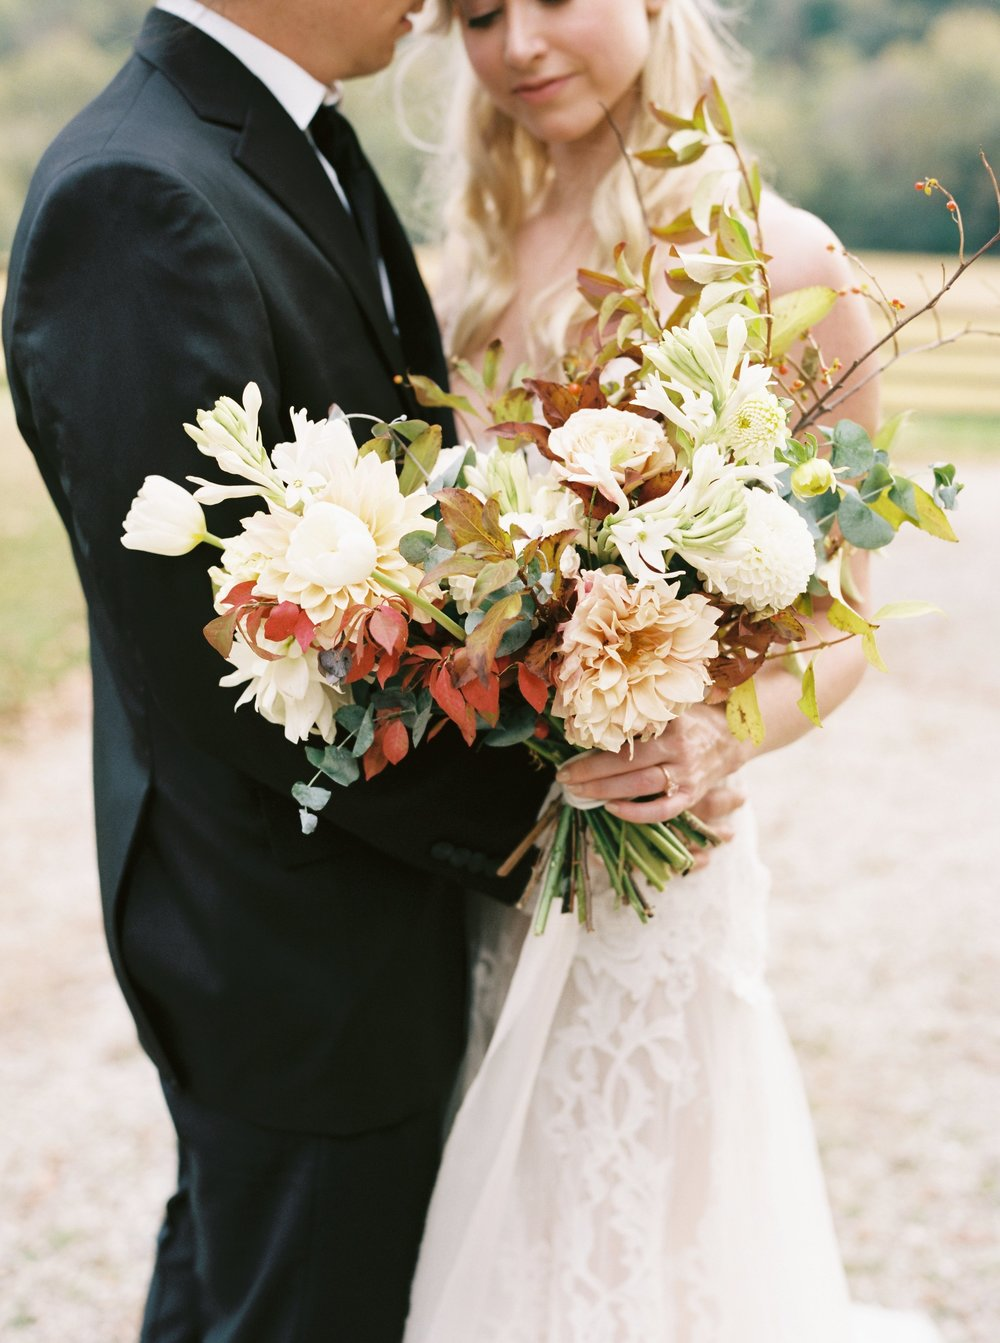 kyle john wedding photography chicago wedding photographer evergreen flower co bridal bouquet styled shoot